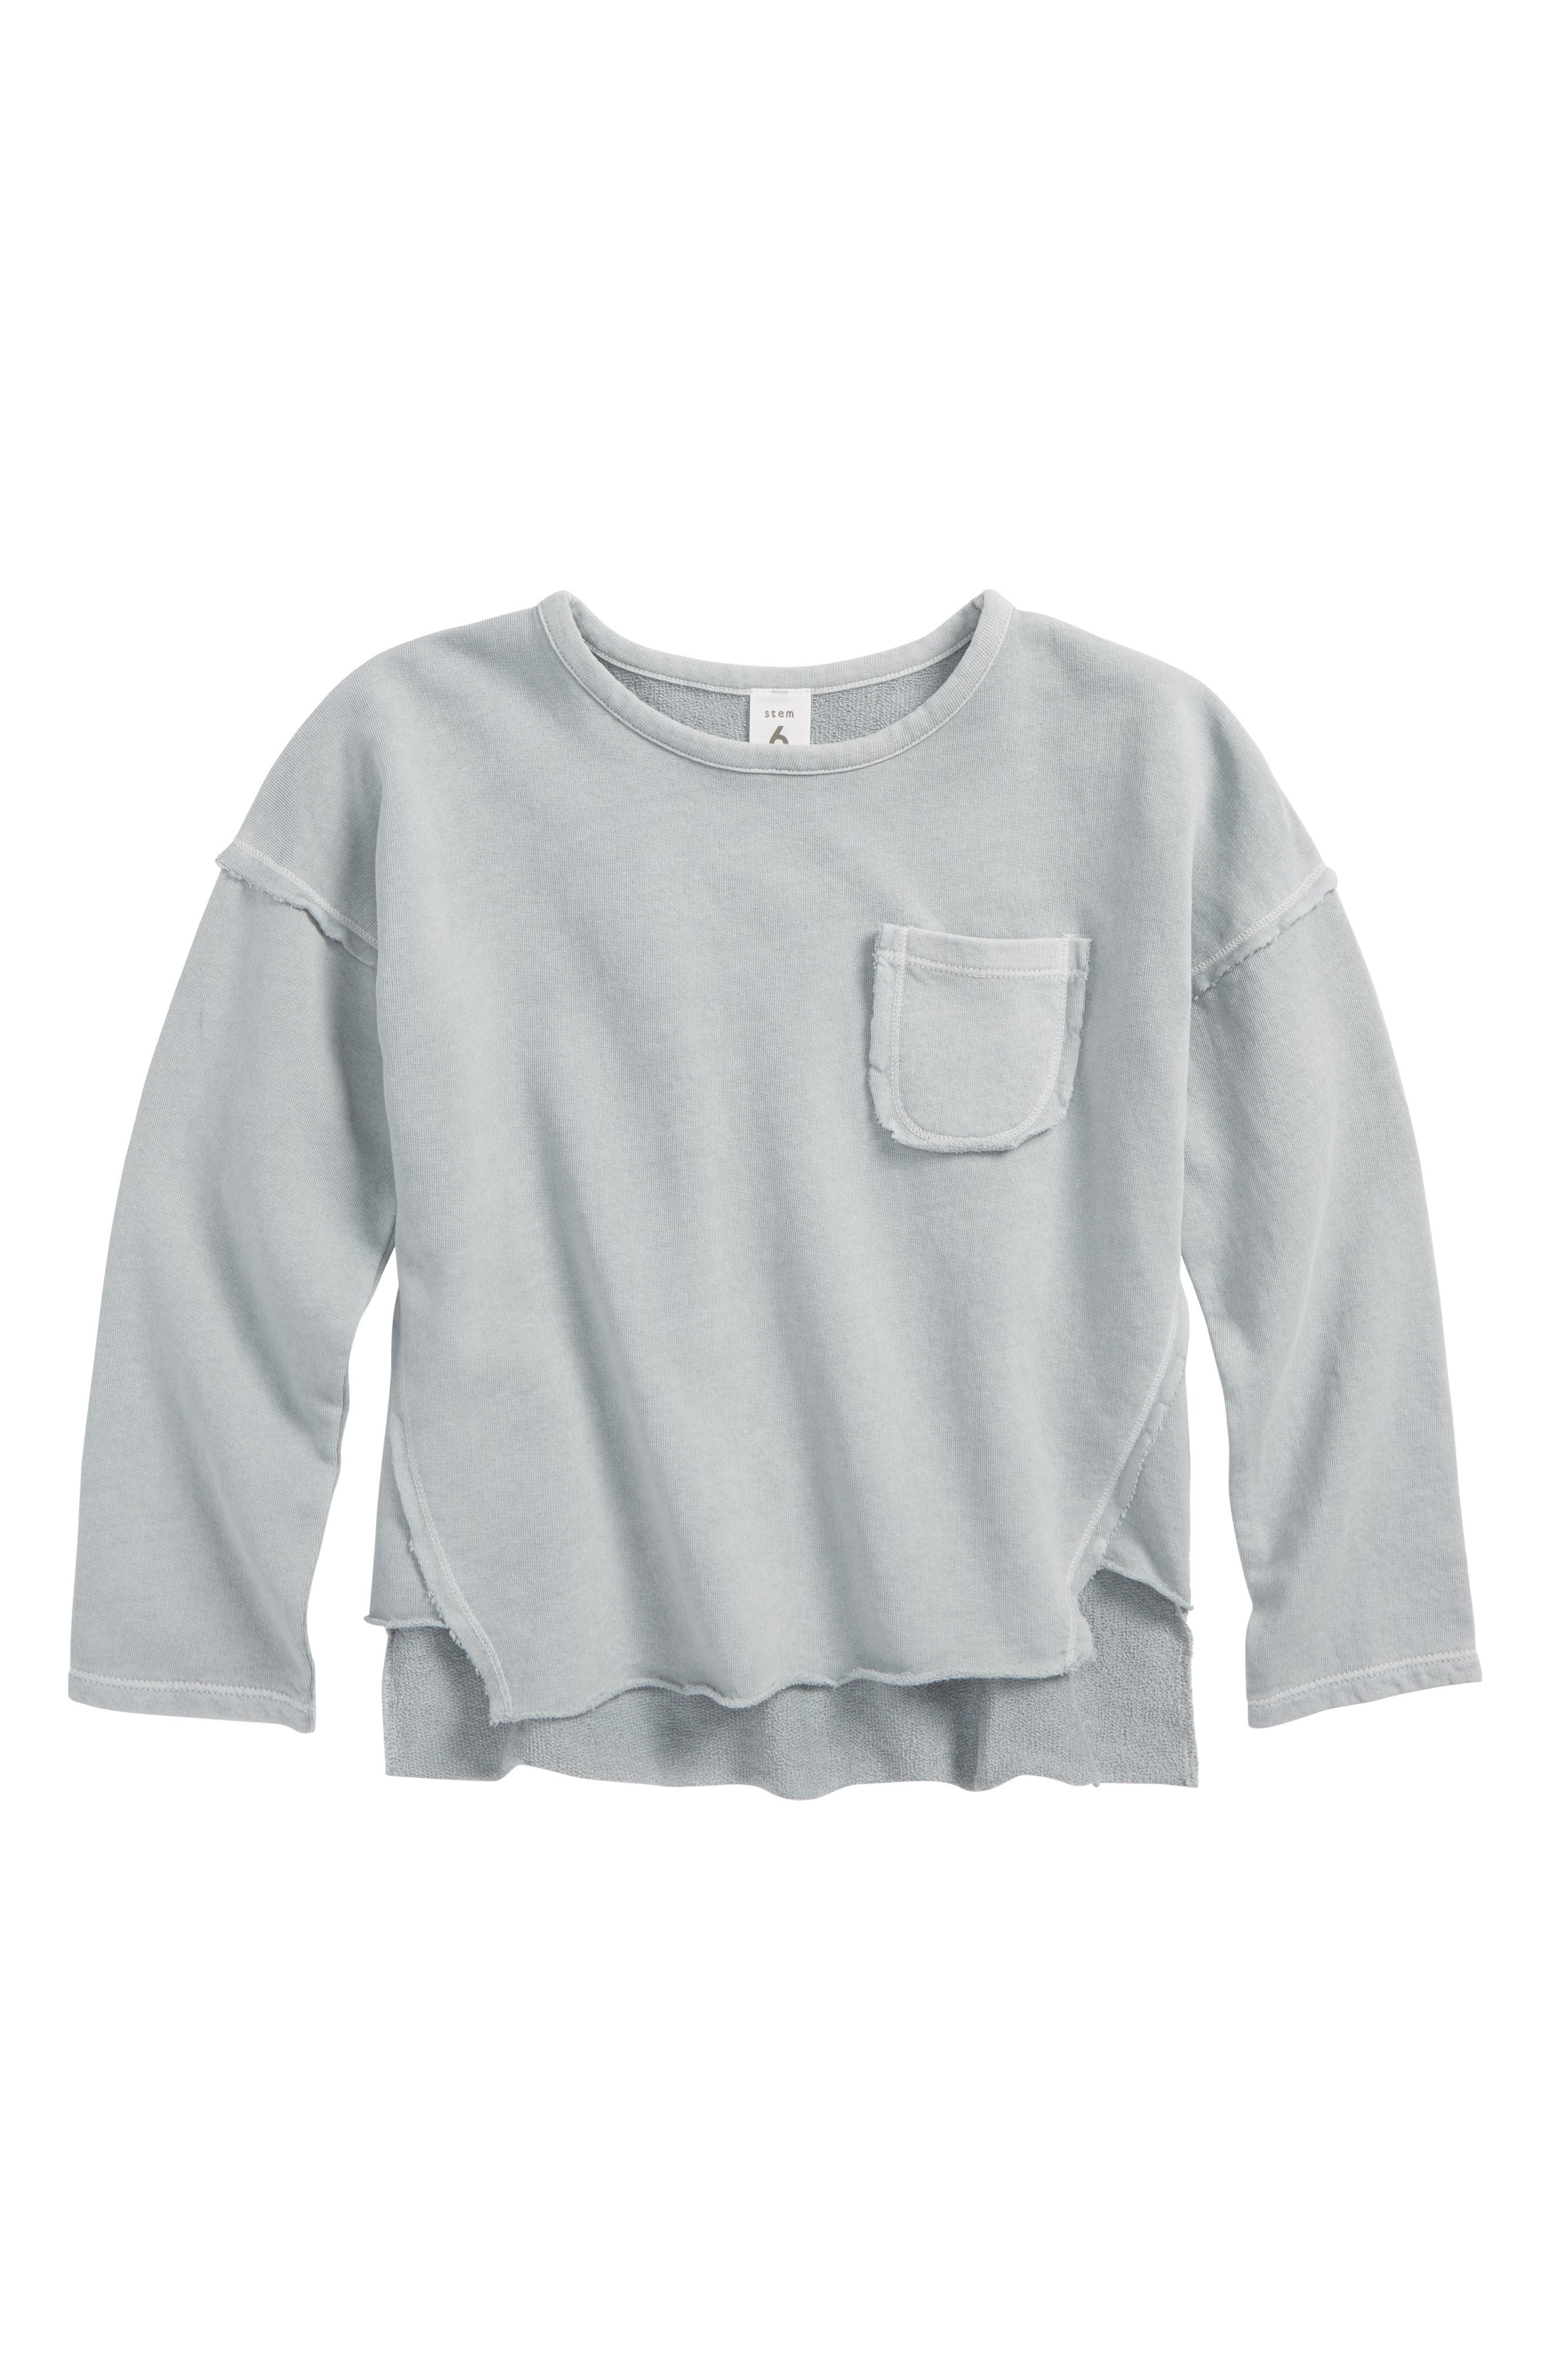 Pocket Sweatshirt,                         Main,                         color, Blue Fog Wash